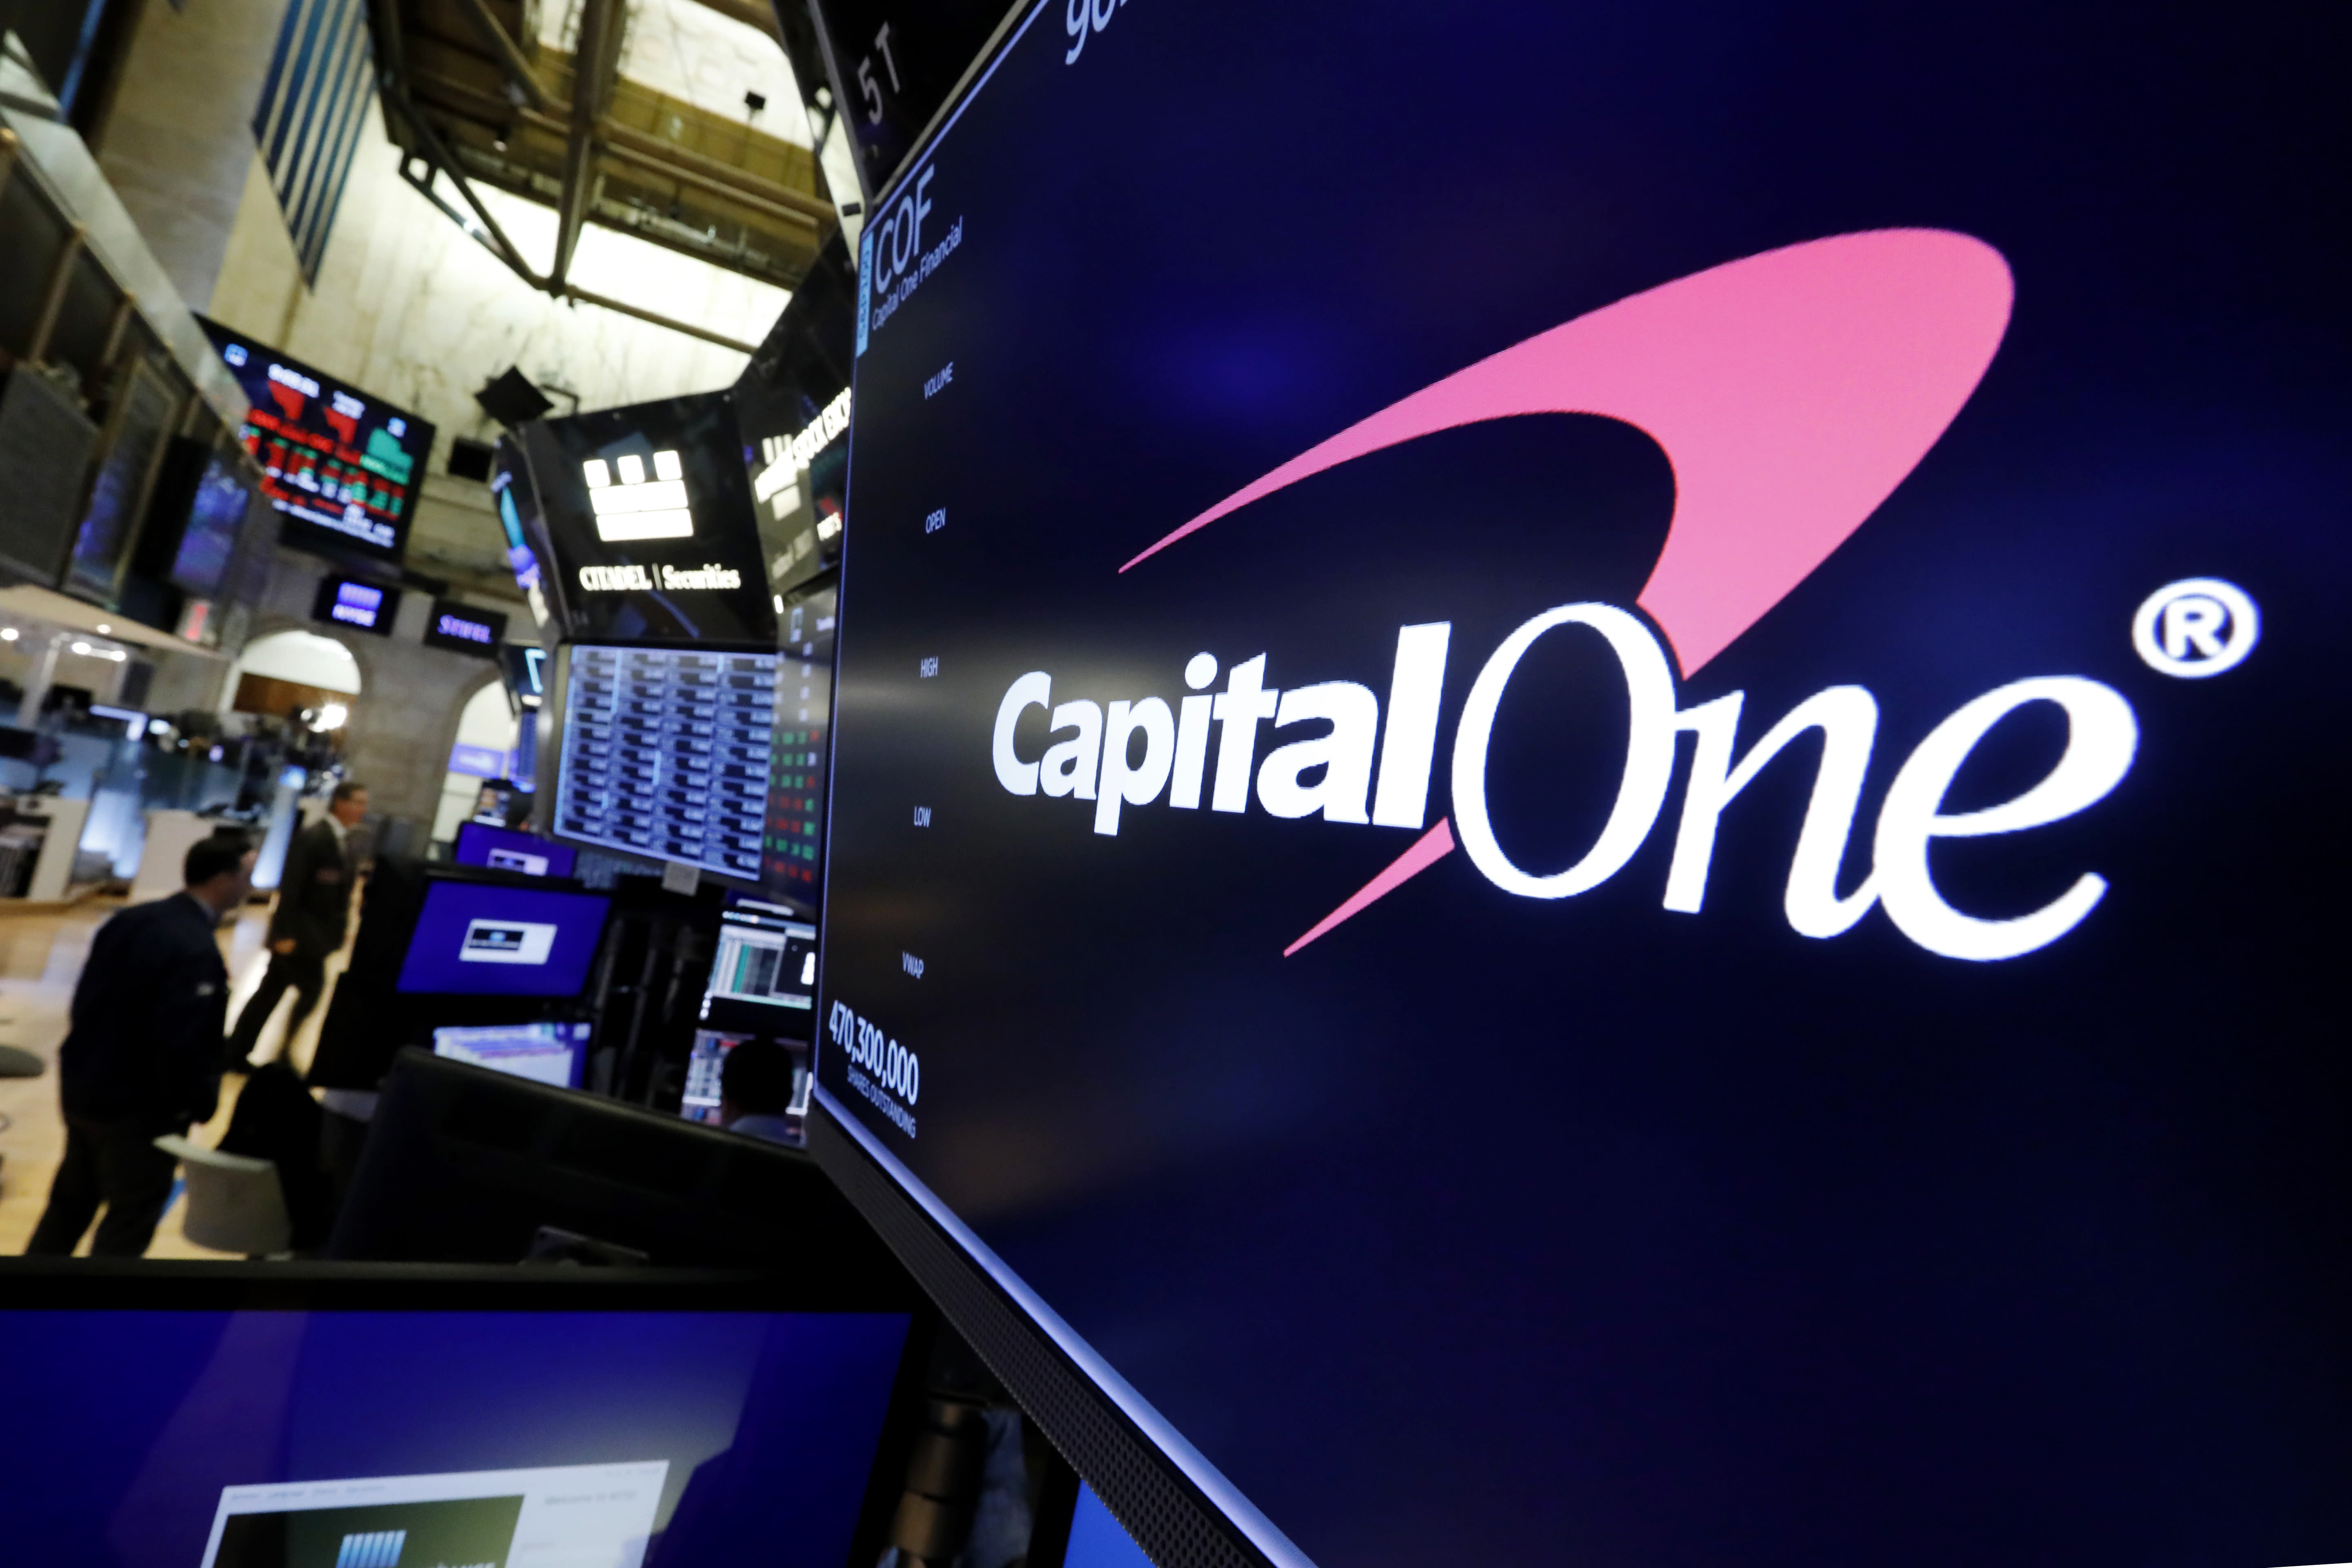 Capital One's data breach could 'exceed $300 million by the time it's all said and done'